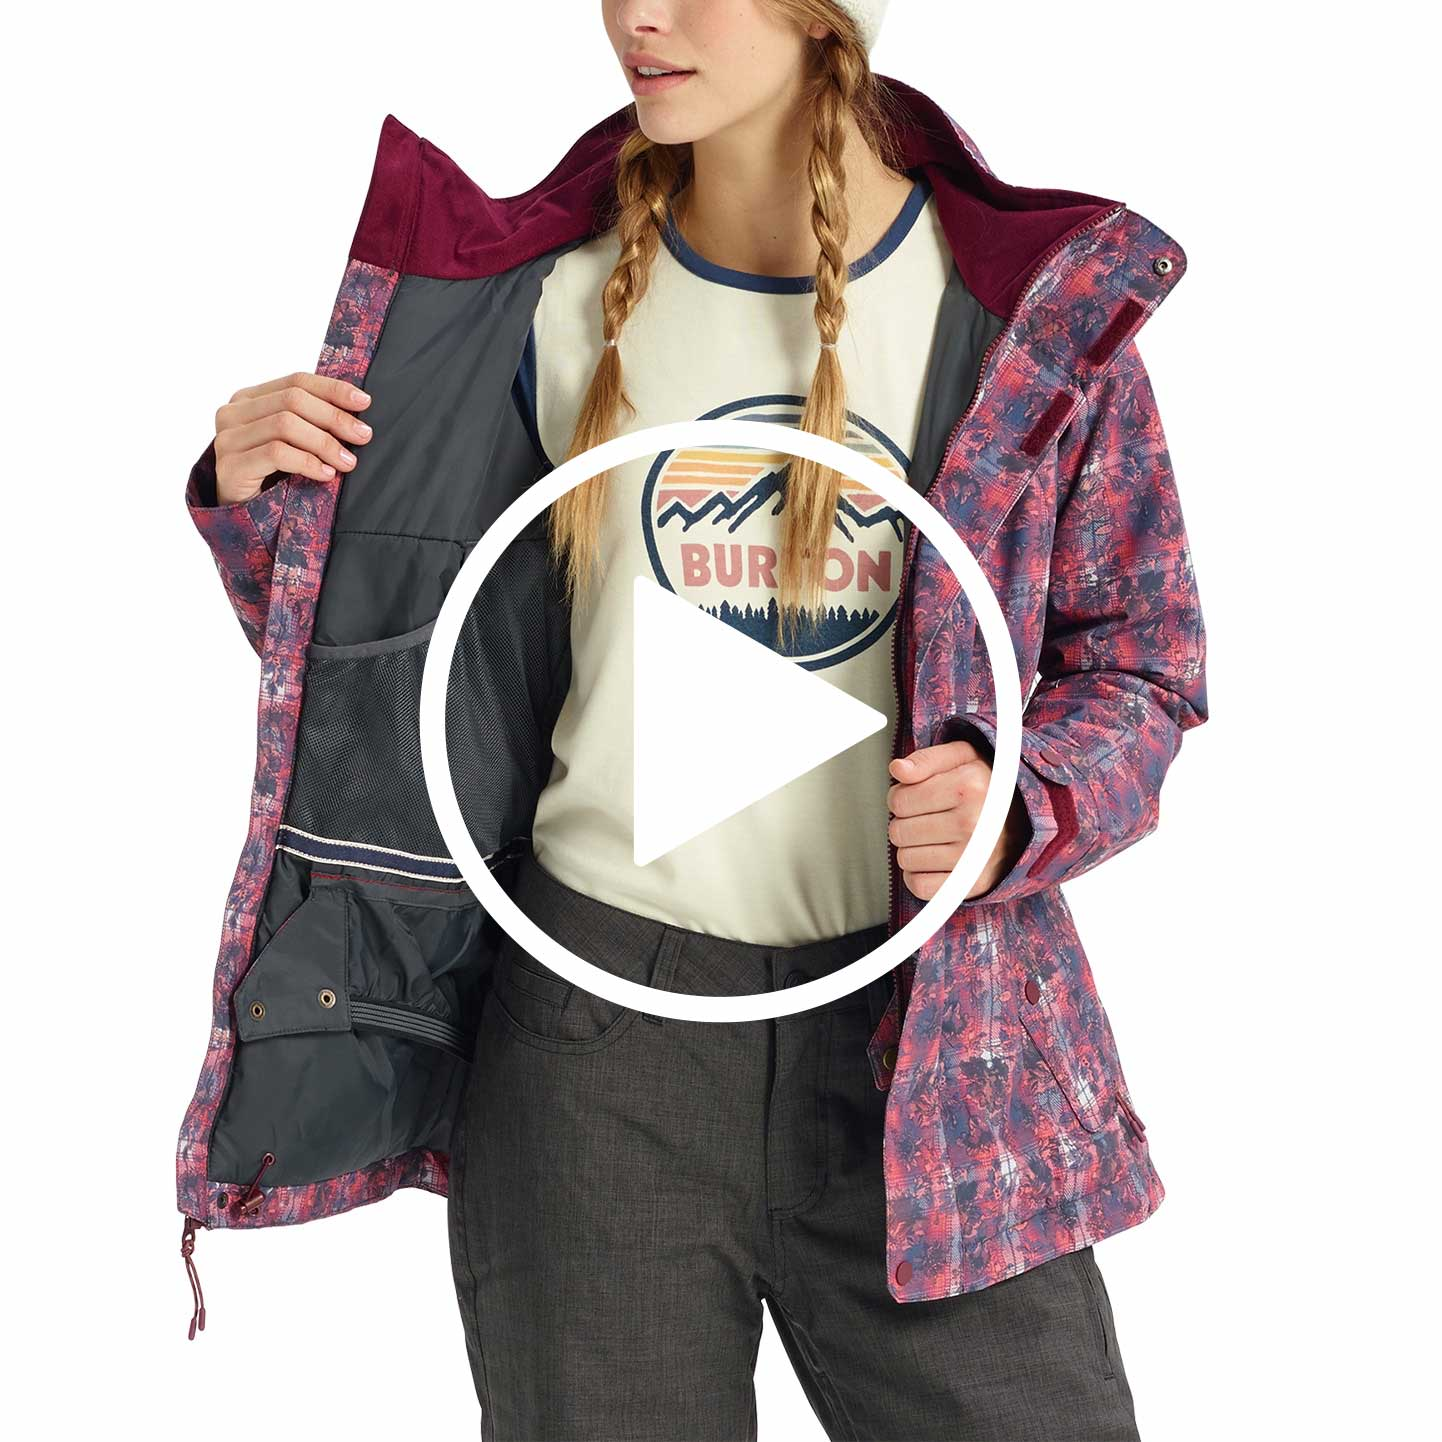 922413ddc56 Includes Women s Burton Jacket Standard Features Package